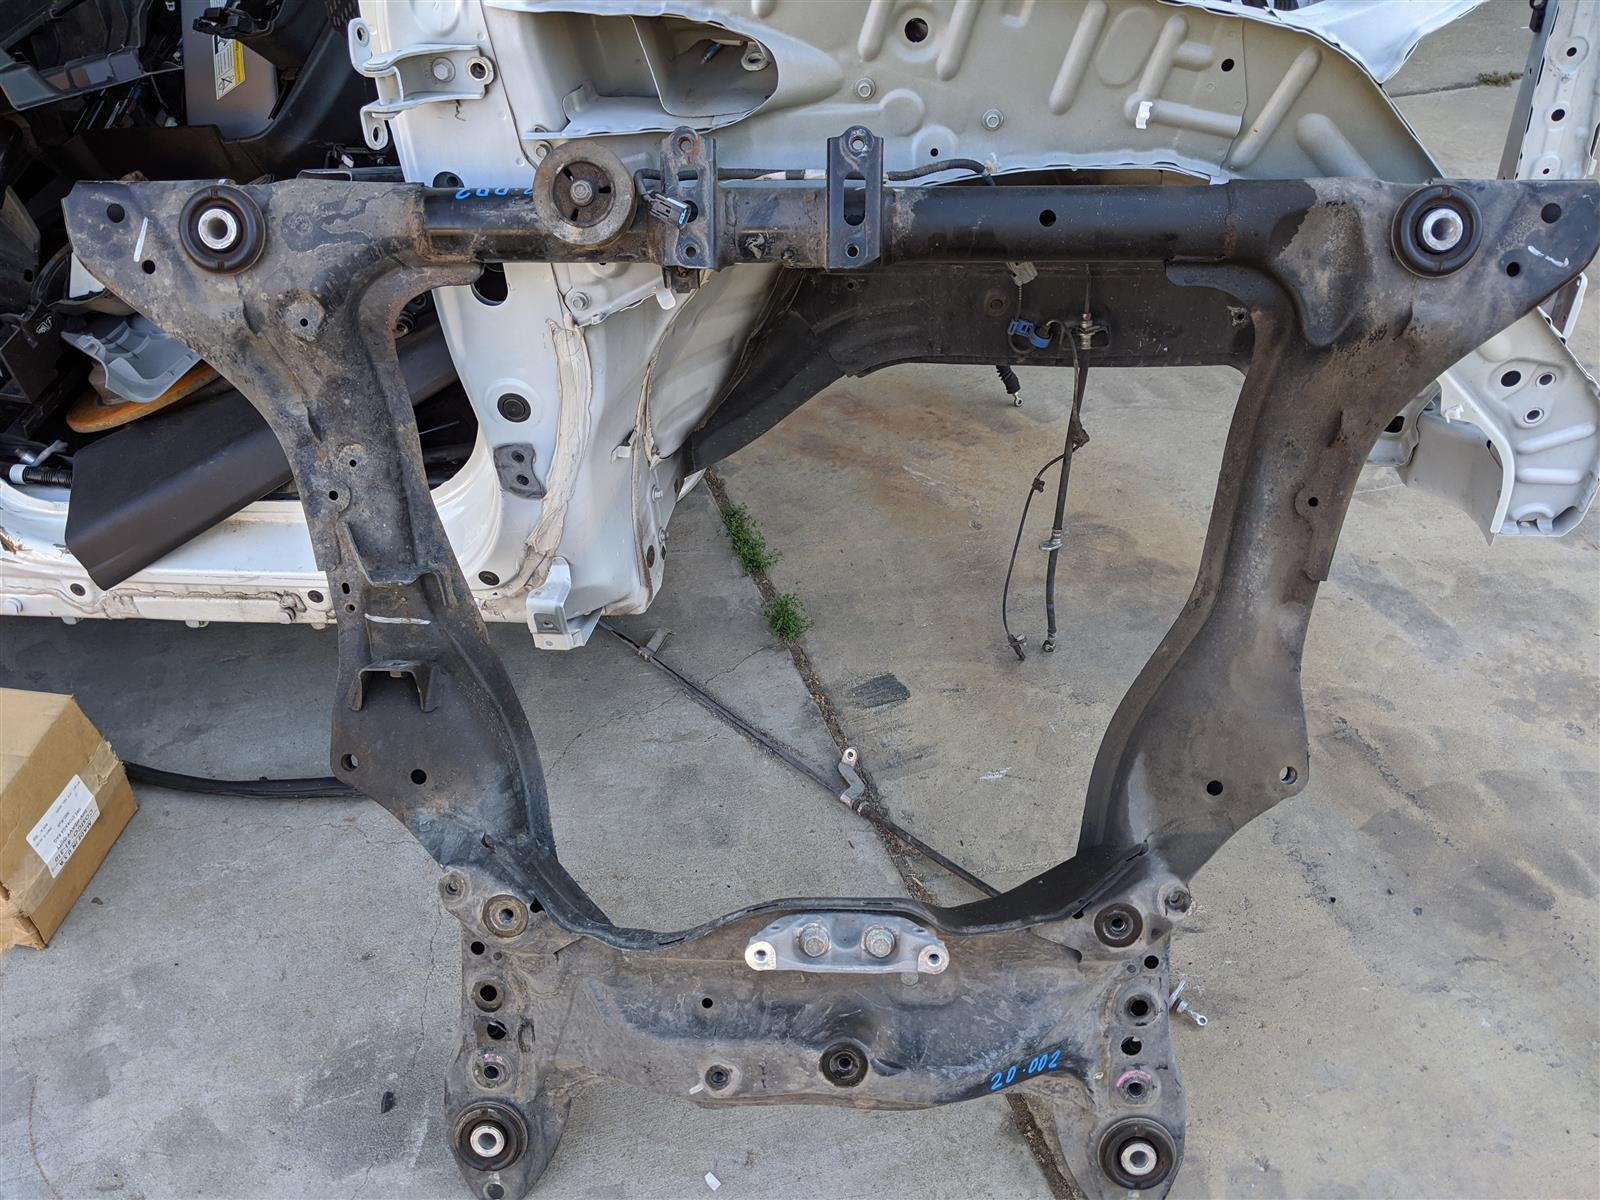 2016 Acura MDX Front Subframe Engine Cradle Replacement